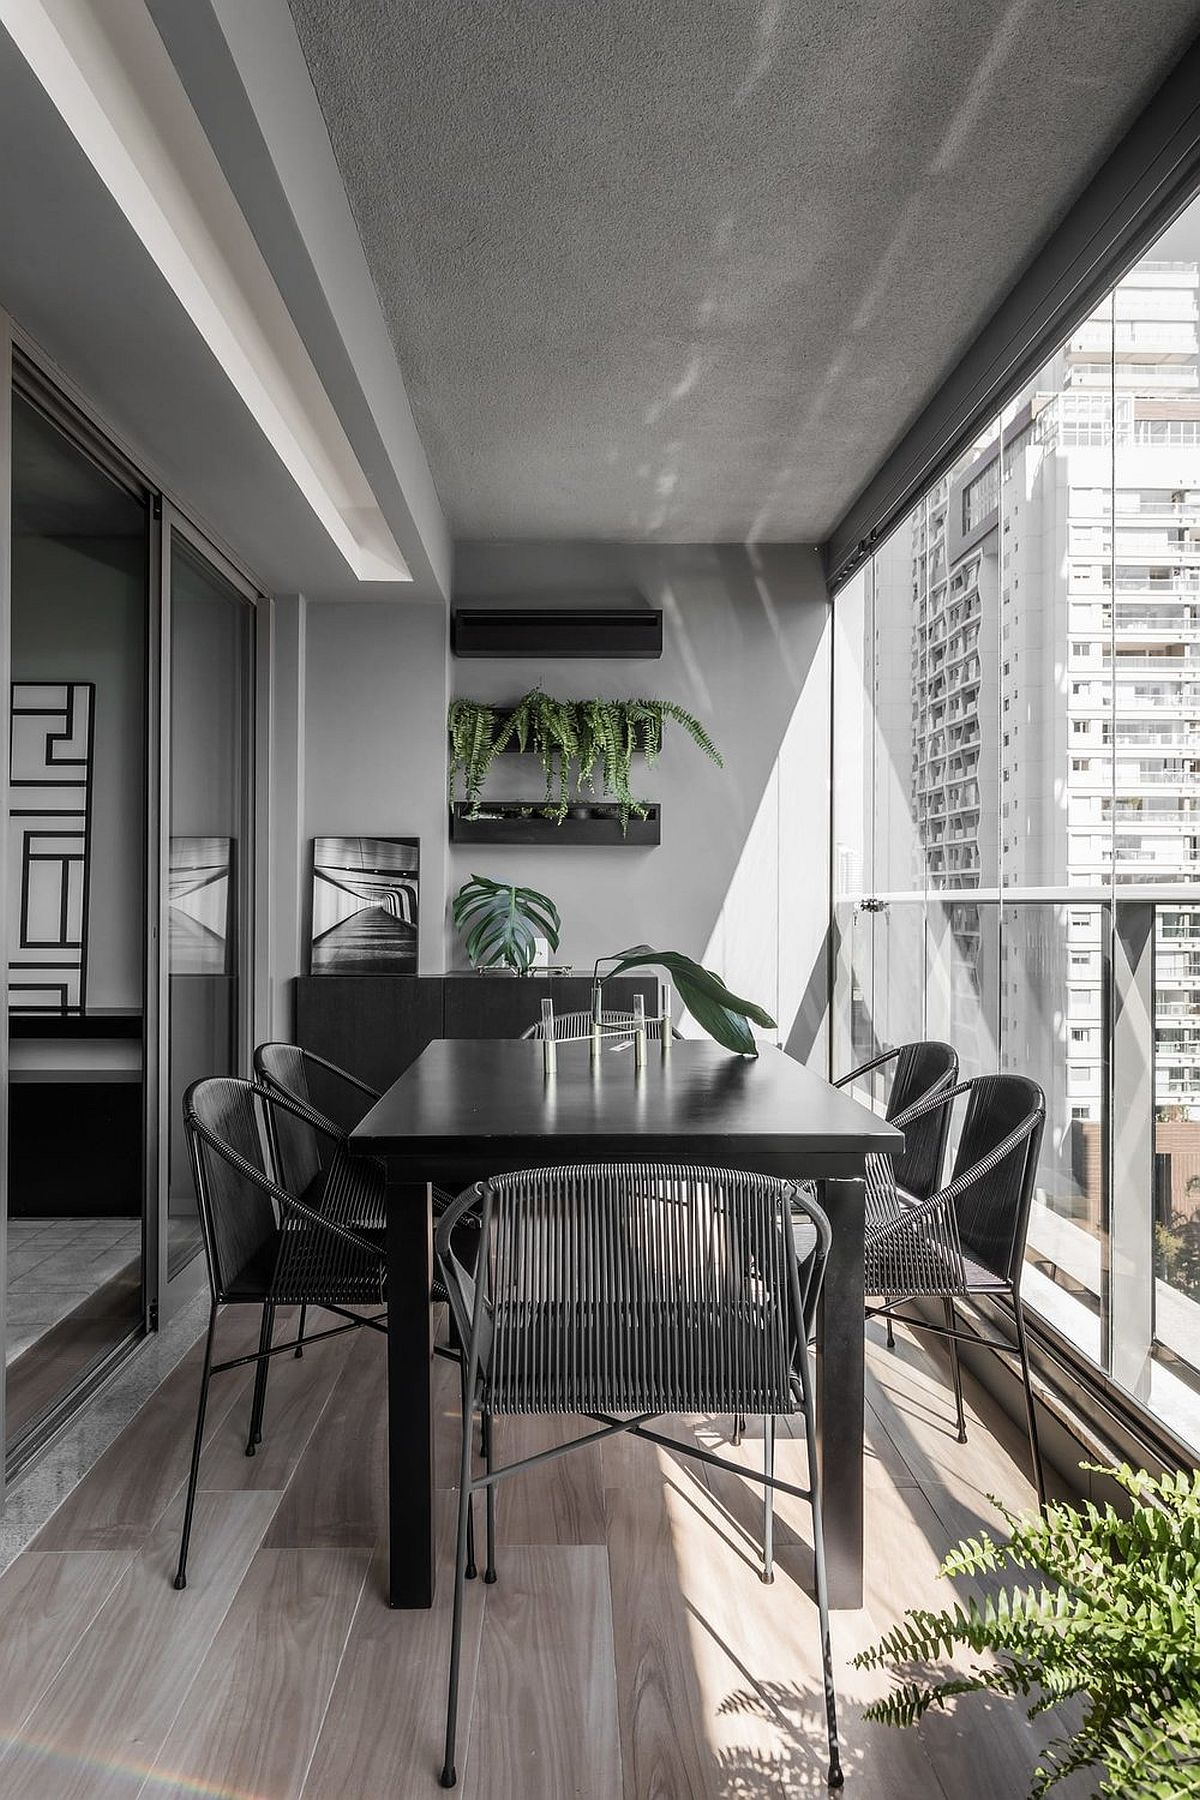 Dining-outside-in-the-balcony-with-a-view-of-the-sparkling-city-skyline-37529